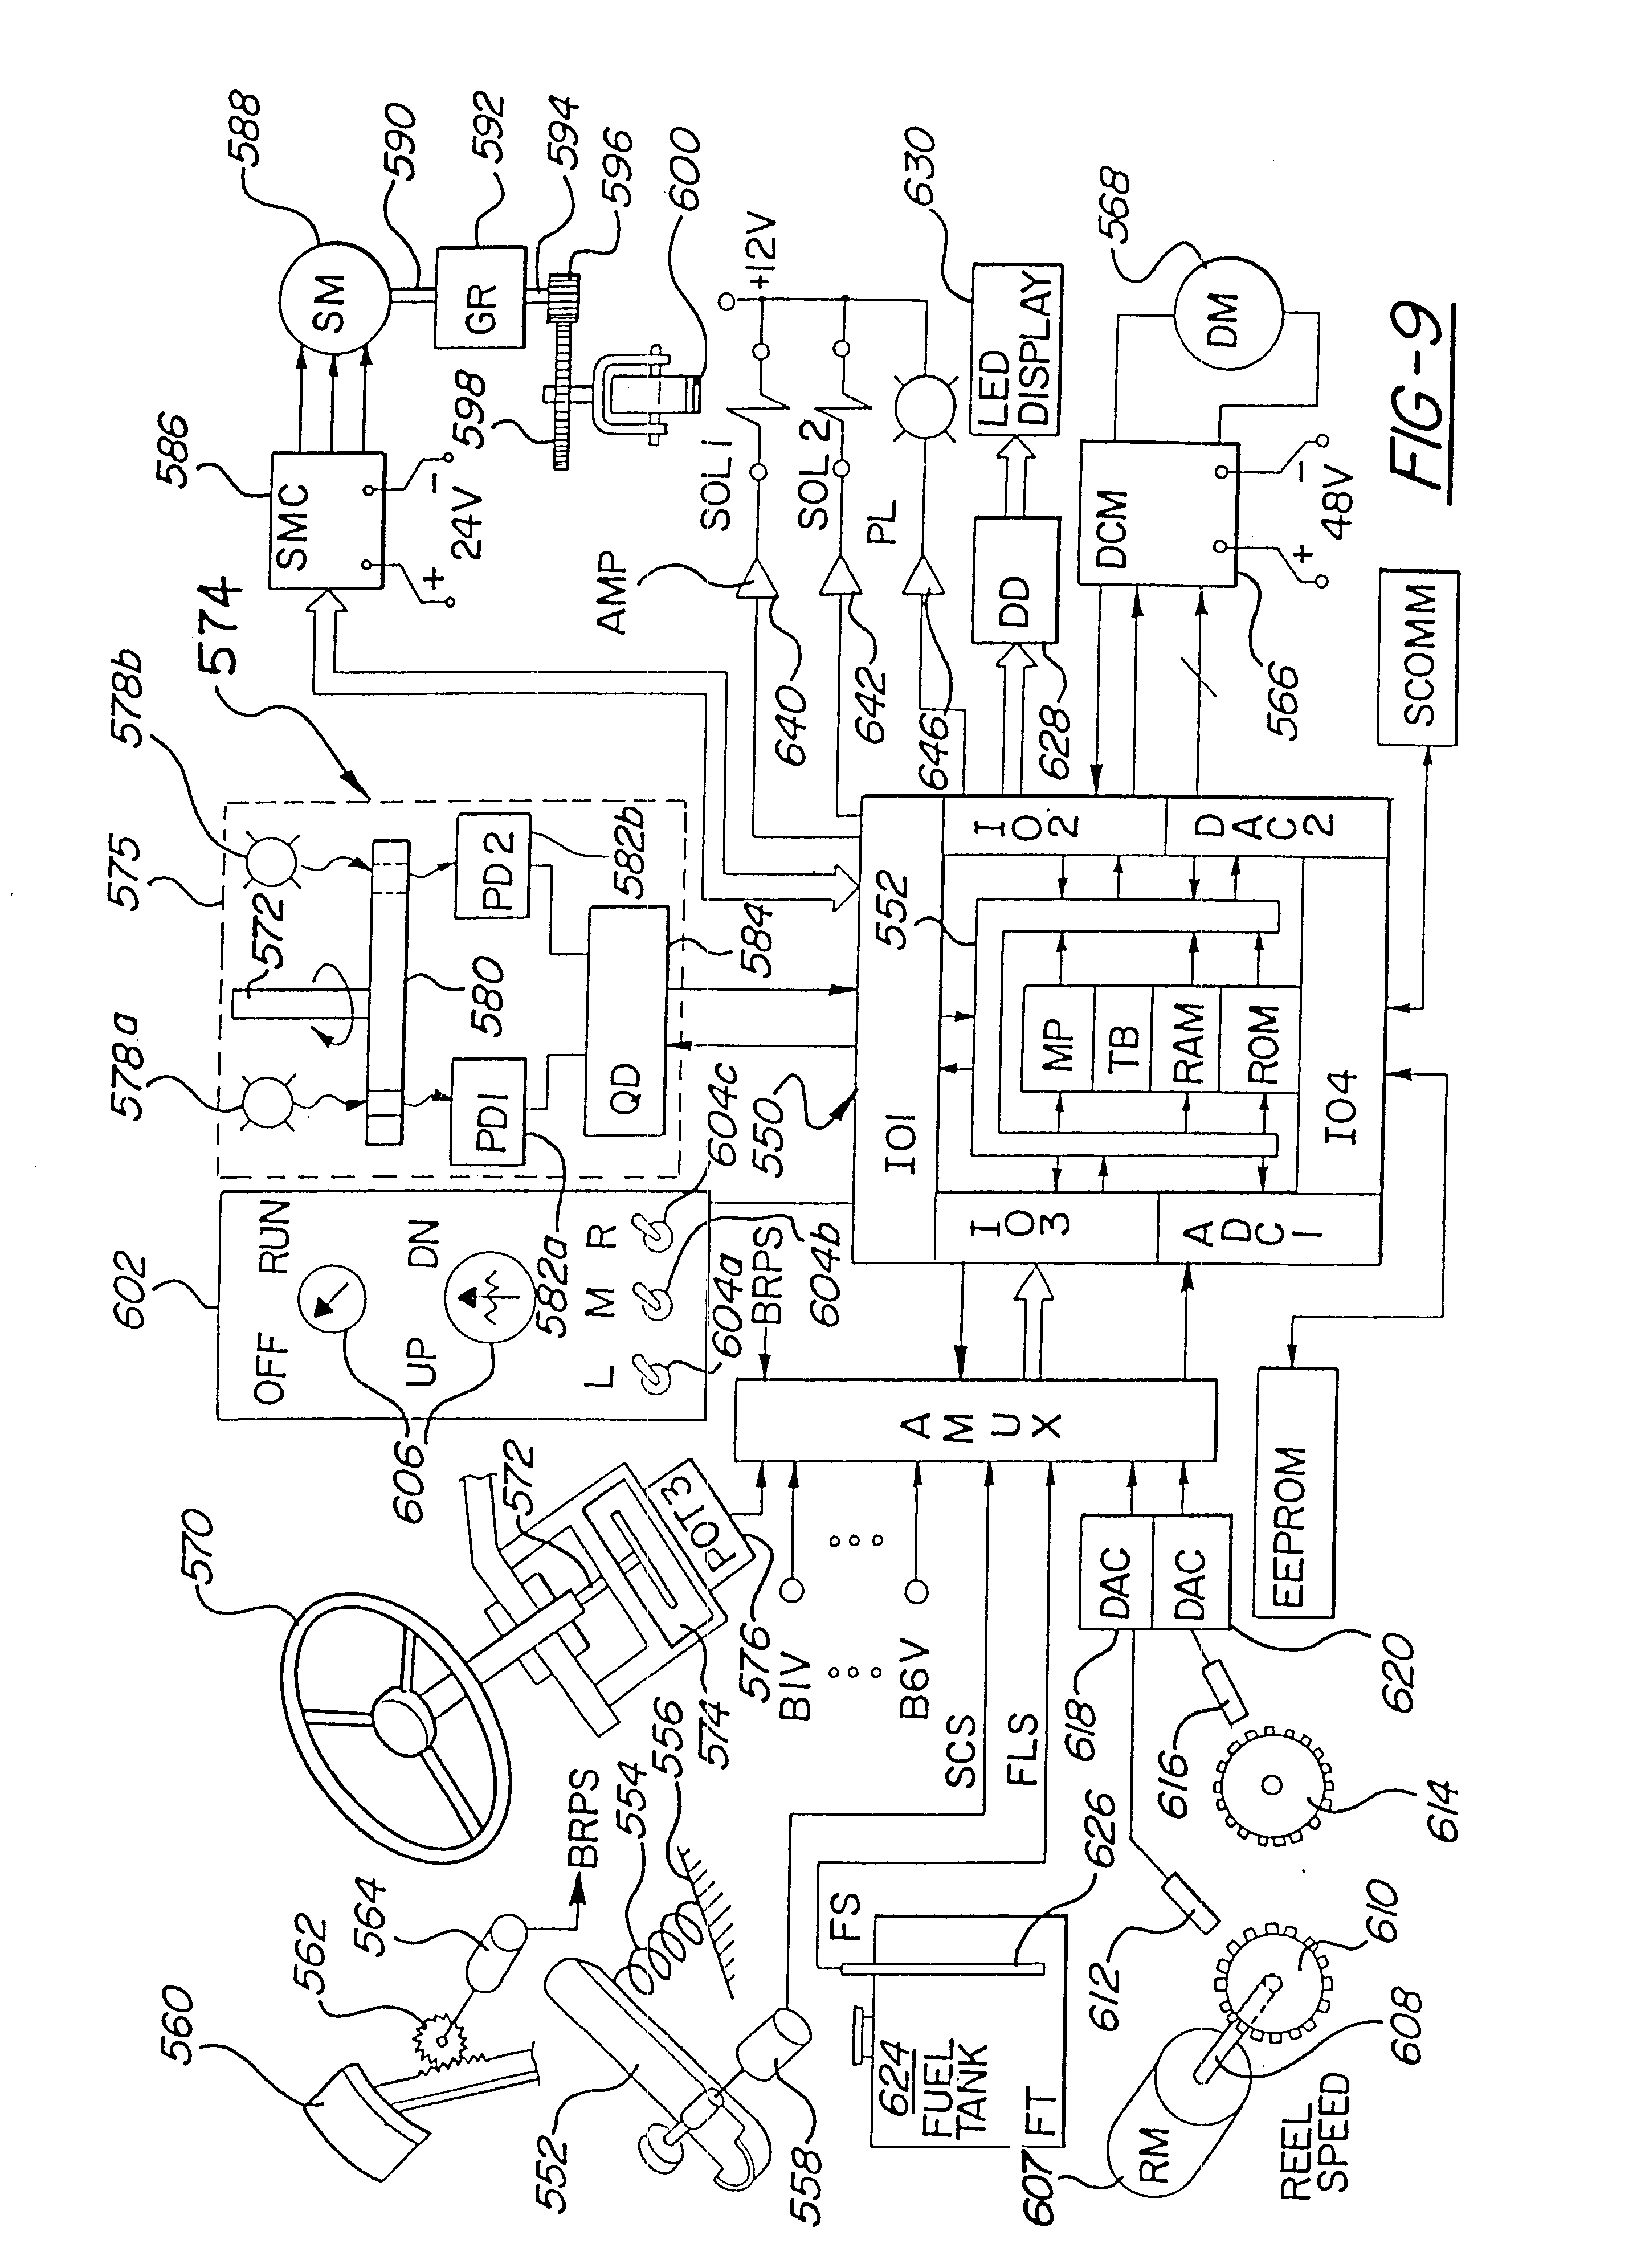 Patent Us6449934 Electric Riding Mower With Motor Generator Set Drive System Diagram Parts List For Model 604 Mtdparts Ridingmower Drawing